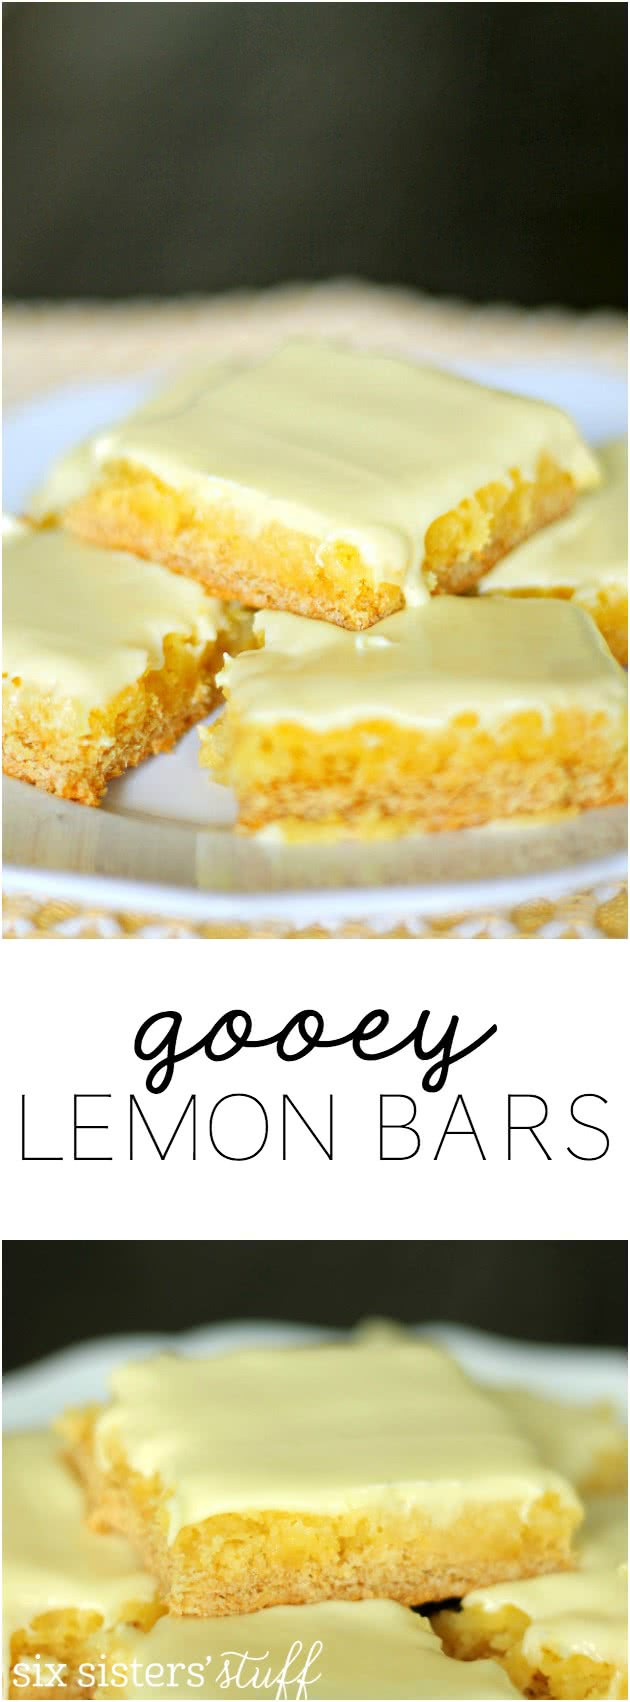 Lemon Bars With Cake Mix  Gooey Lemon Bars